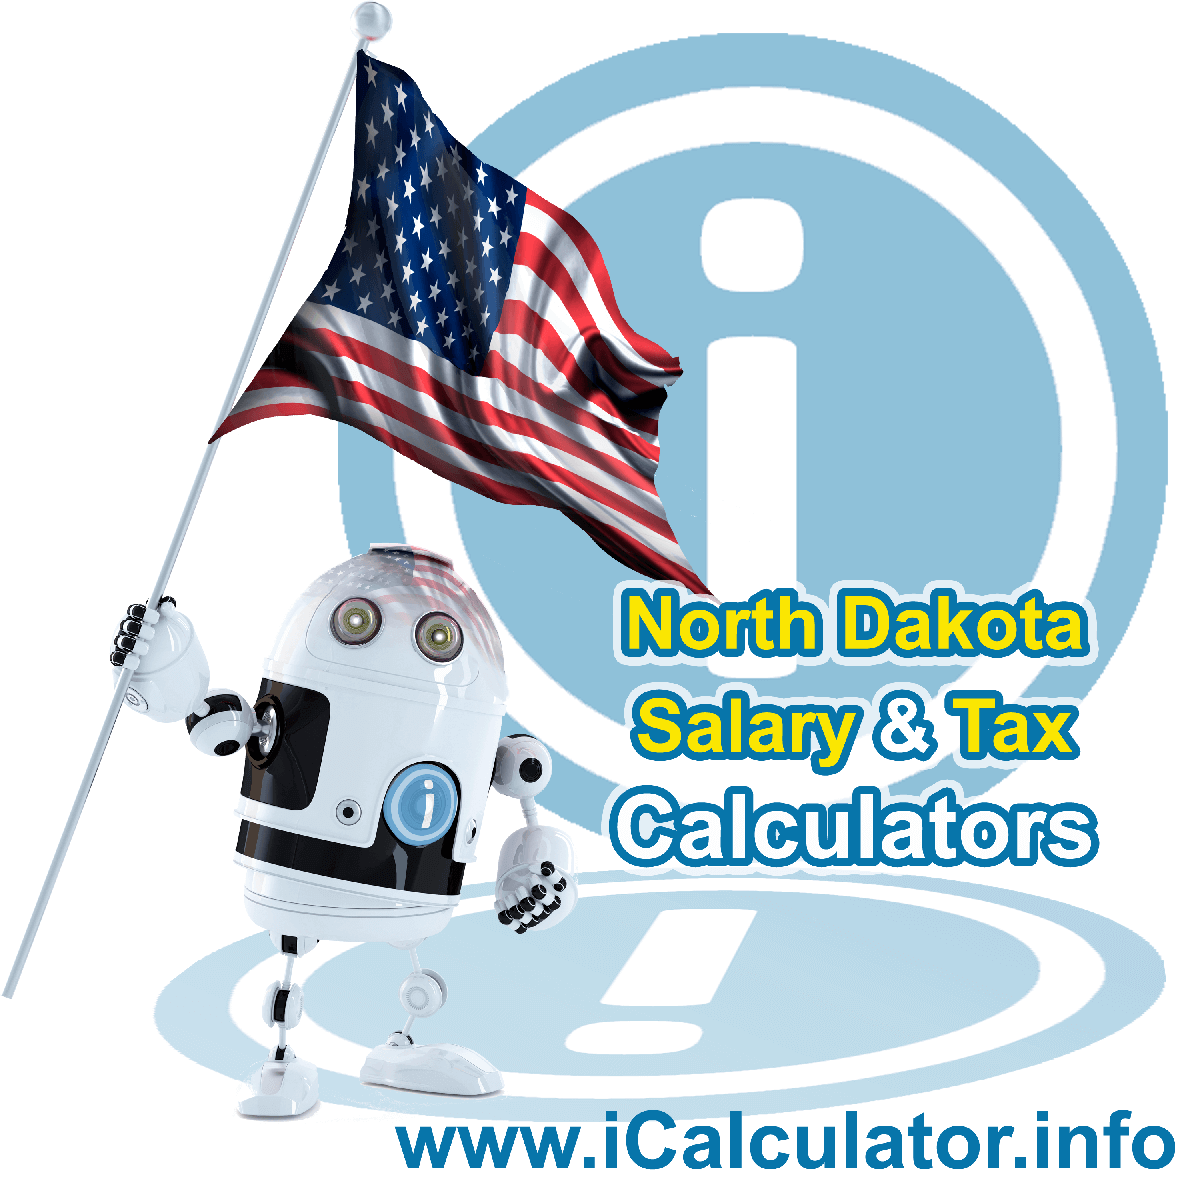 North Dakota Salary Calculator 2021 | iCalculator | The North Dakota Salary Calculator allows you to quickly calculate your salary after tax including North Dakota State Tax, Federal State Tax, Medicare Deductions, Social Security, Capital Gains and other income tax and salary deductions complete with supporting North Dakota state tax tables